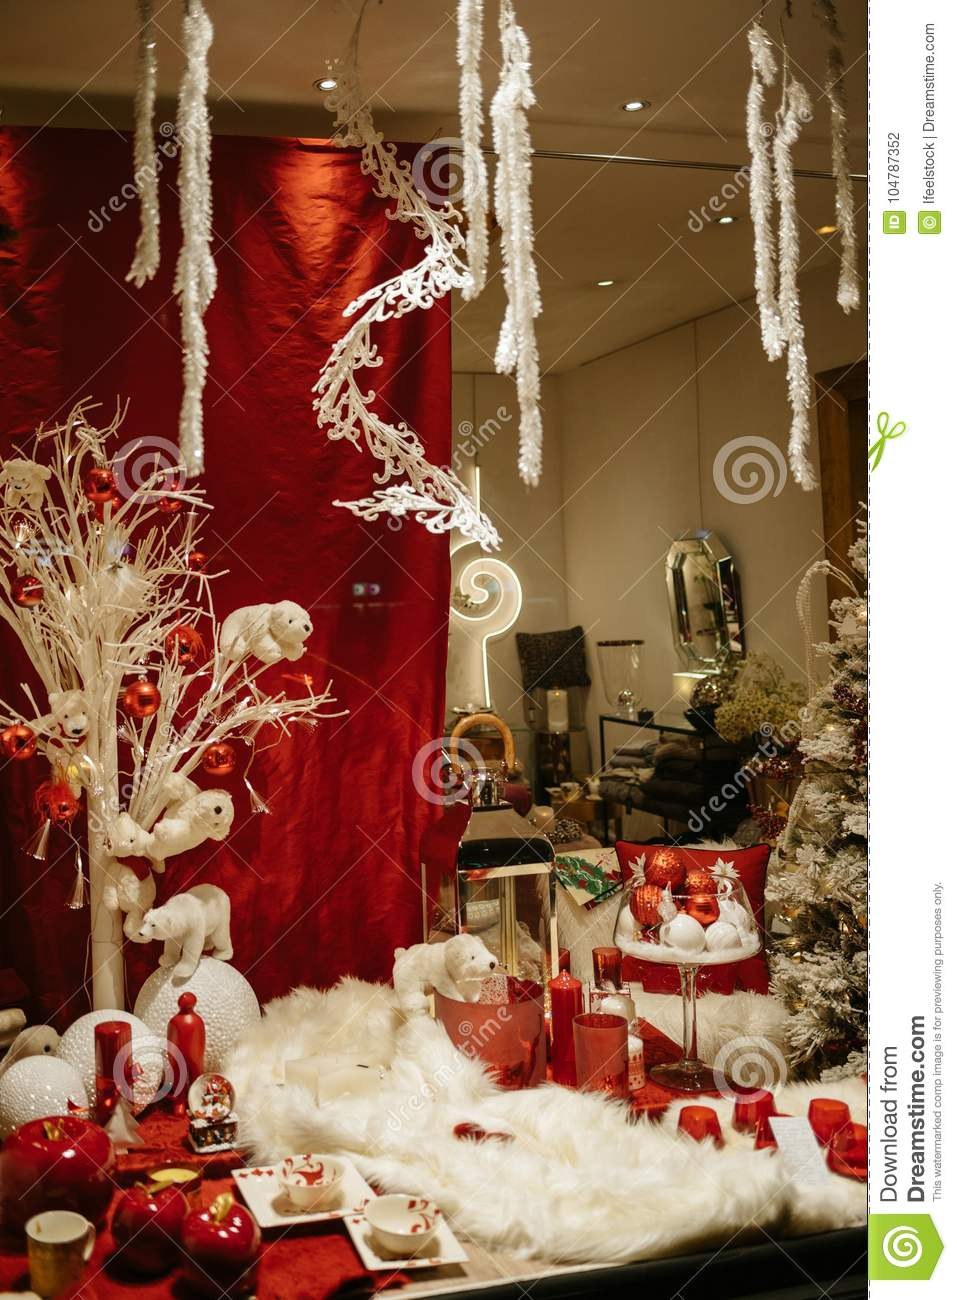 Christmas Decorations Near Me.Christmas Decorations In Store Window Showcase Stock Photo